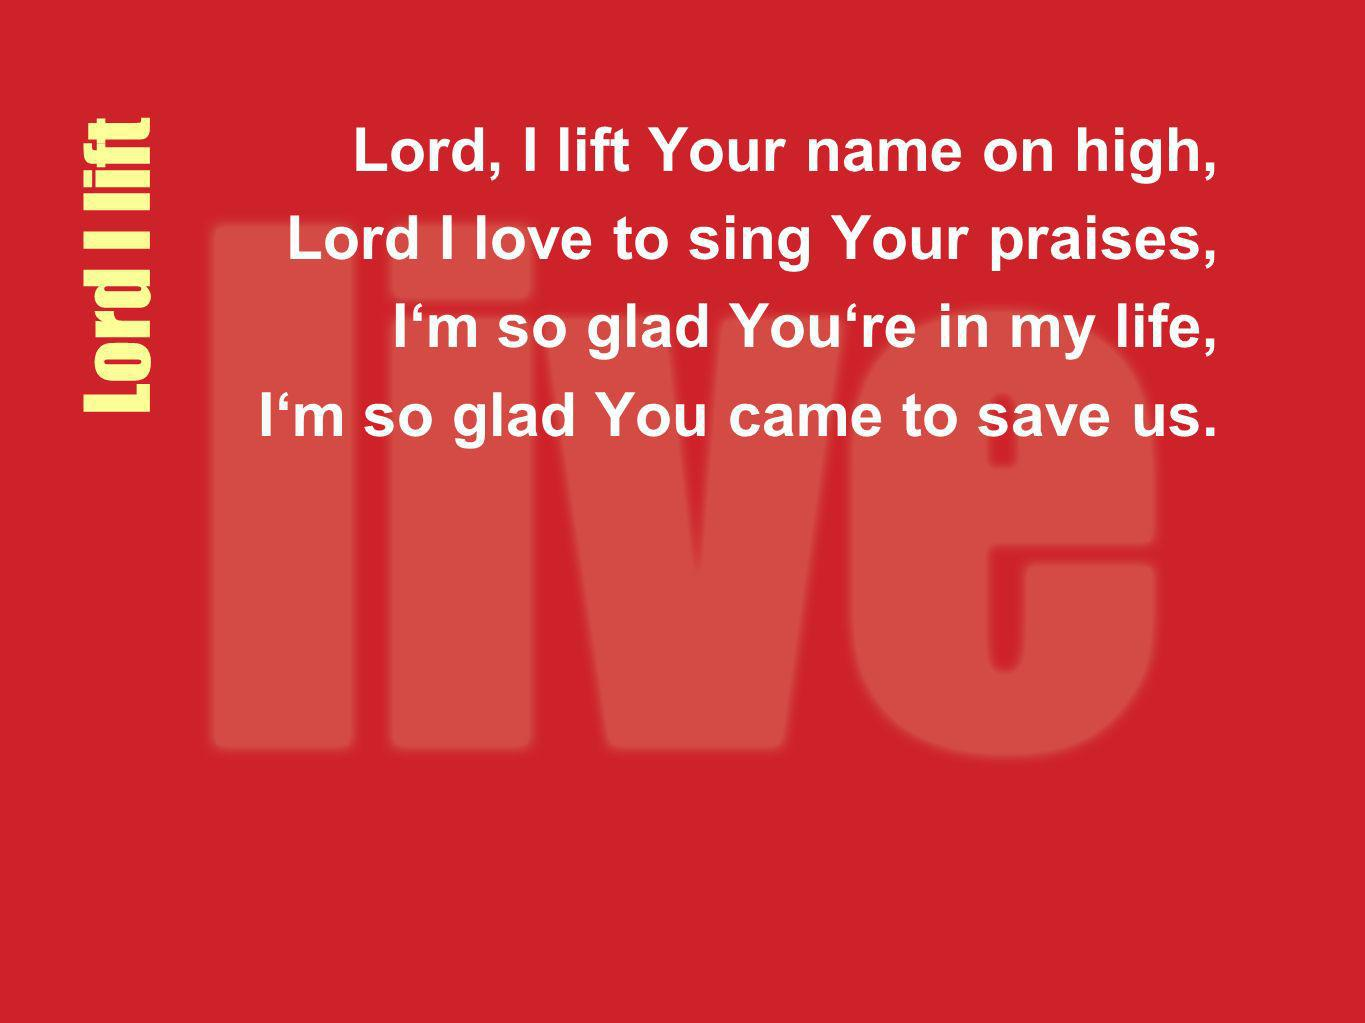 Lord I lift Lord, I lift Your name on high,